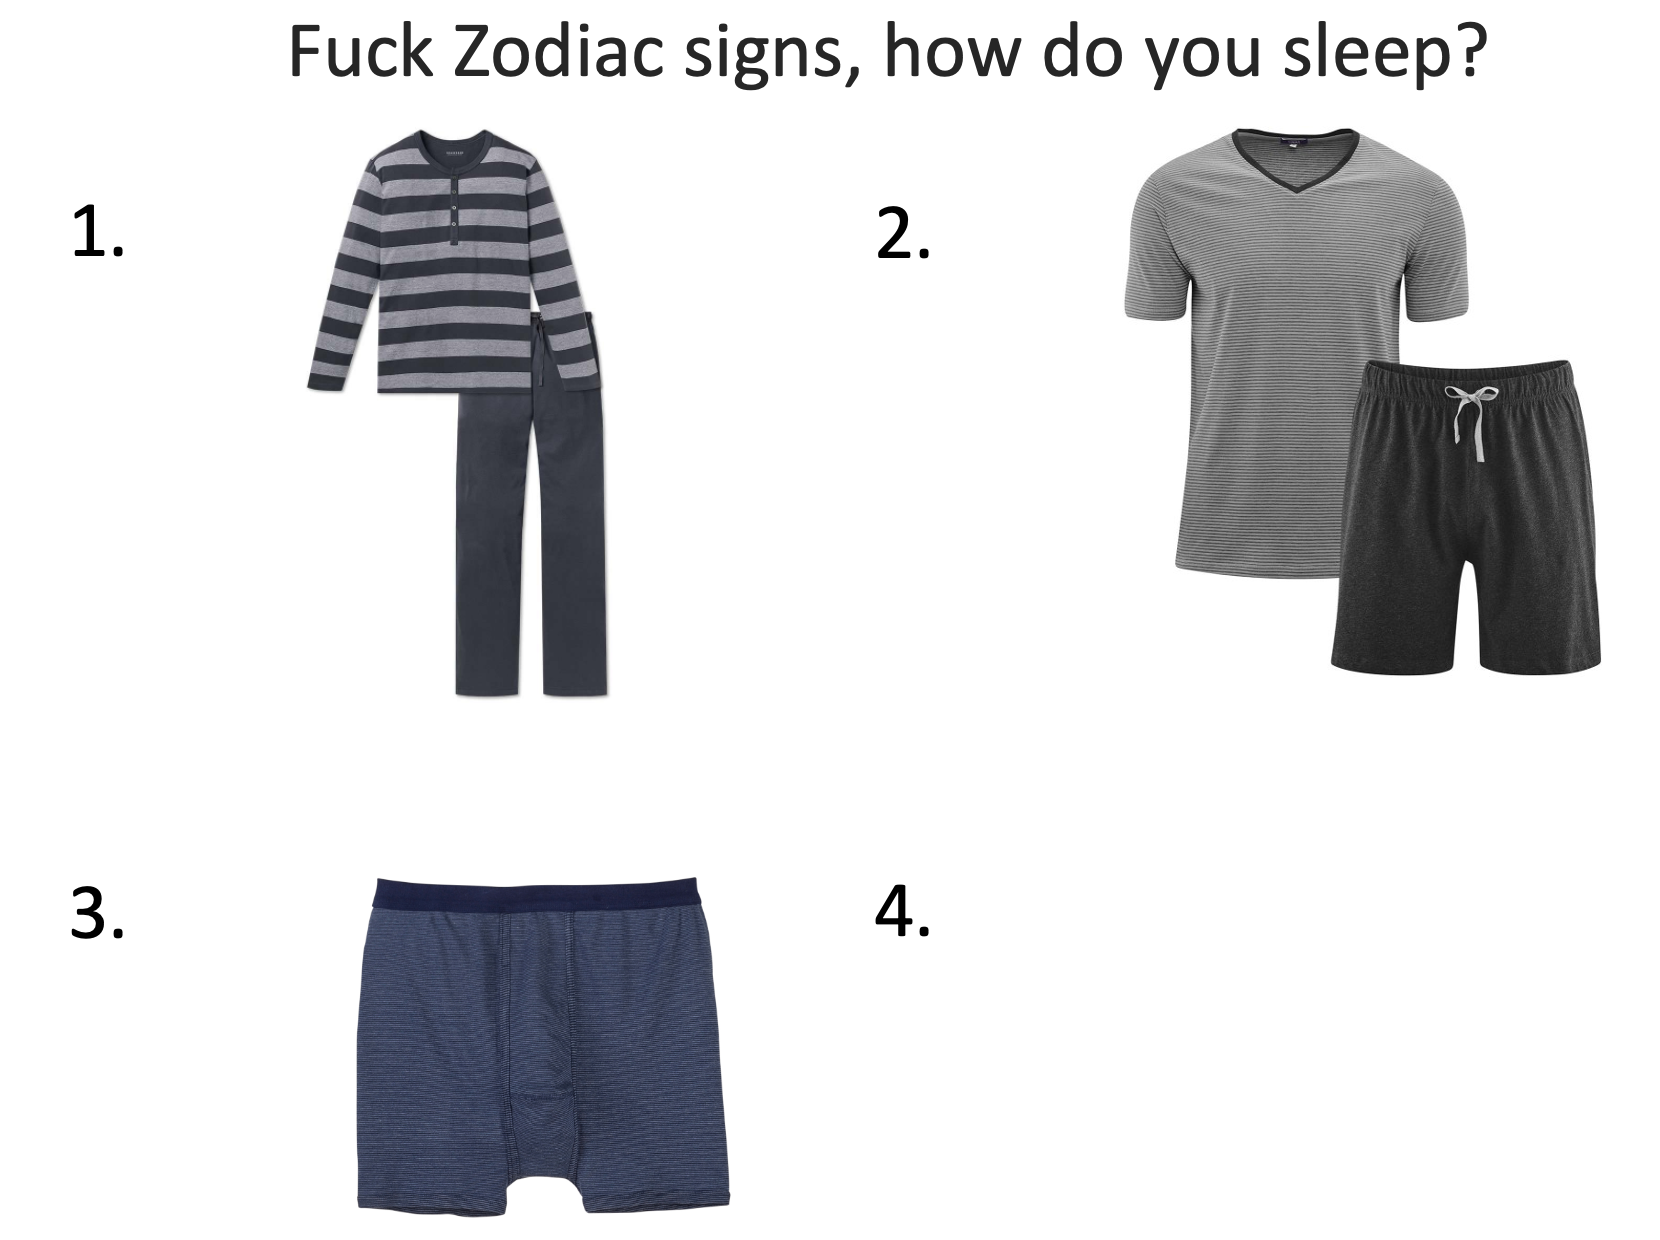 I'm none of these because I don't sleep